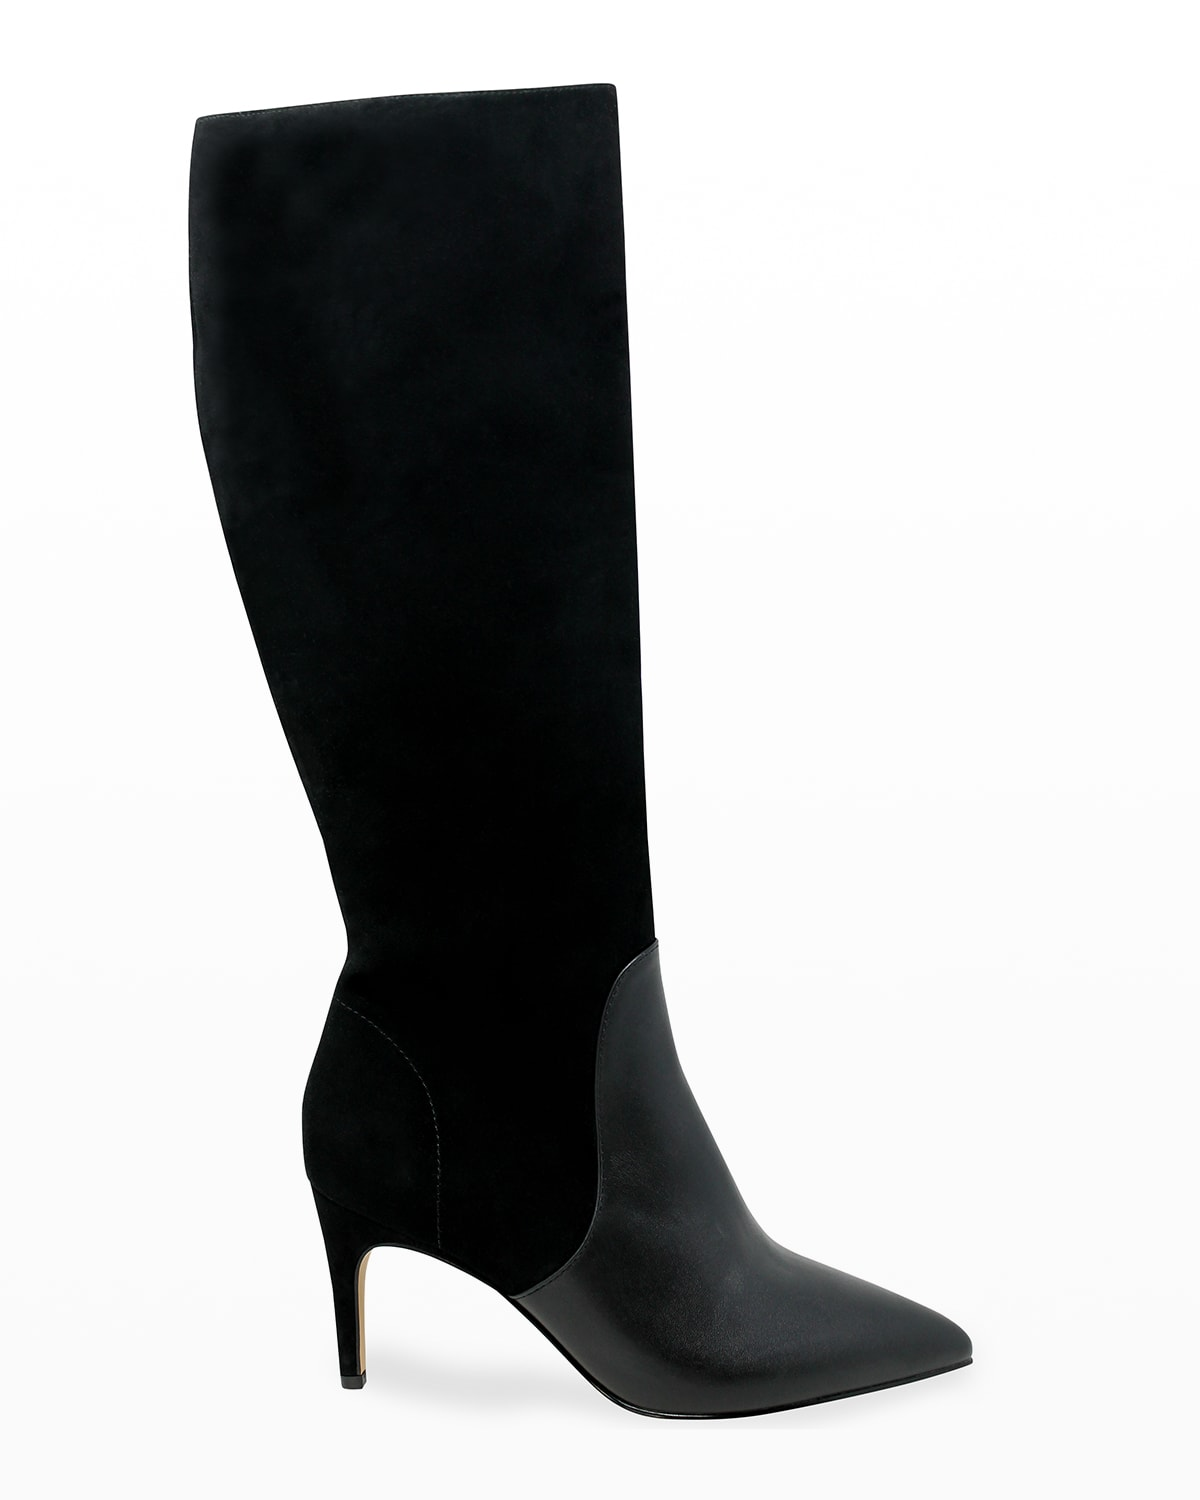 Pinstripe Stretch Suede-Leather Boots